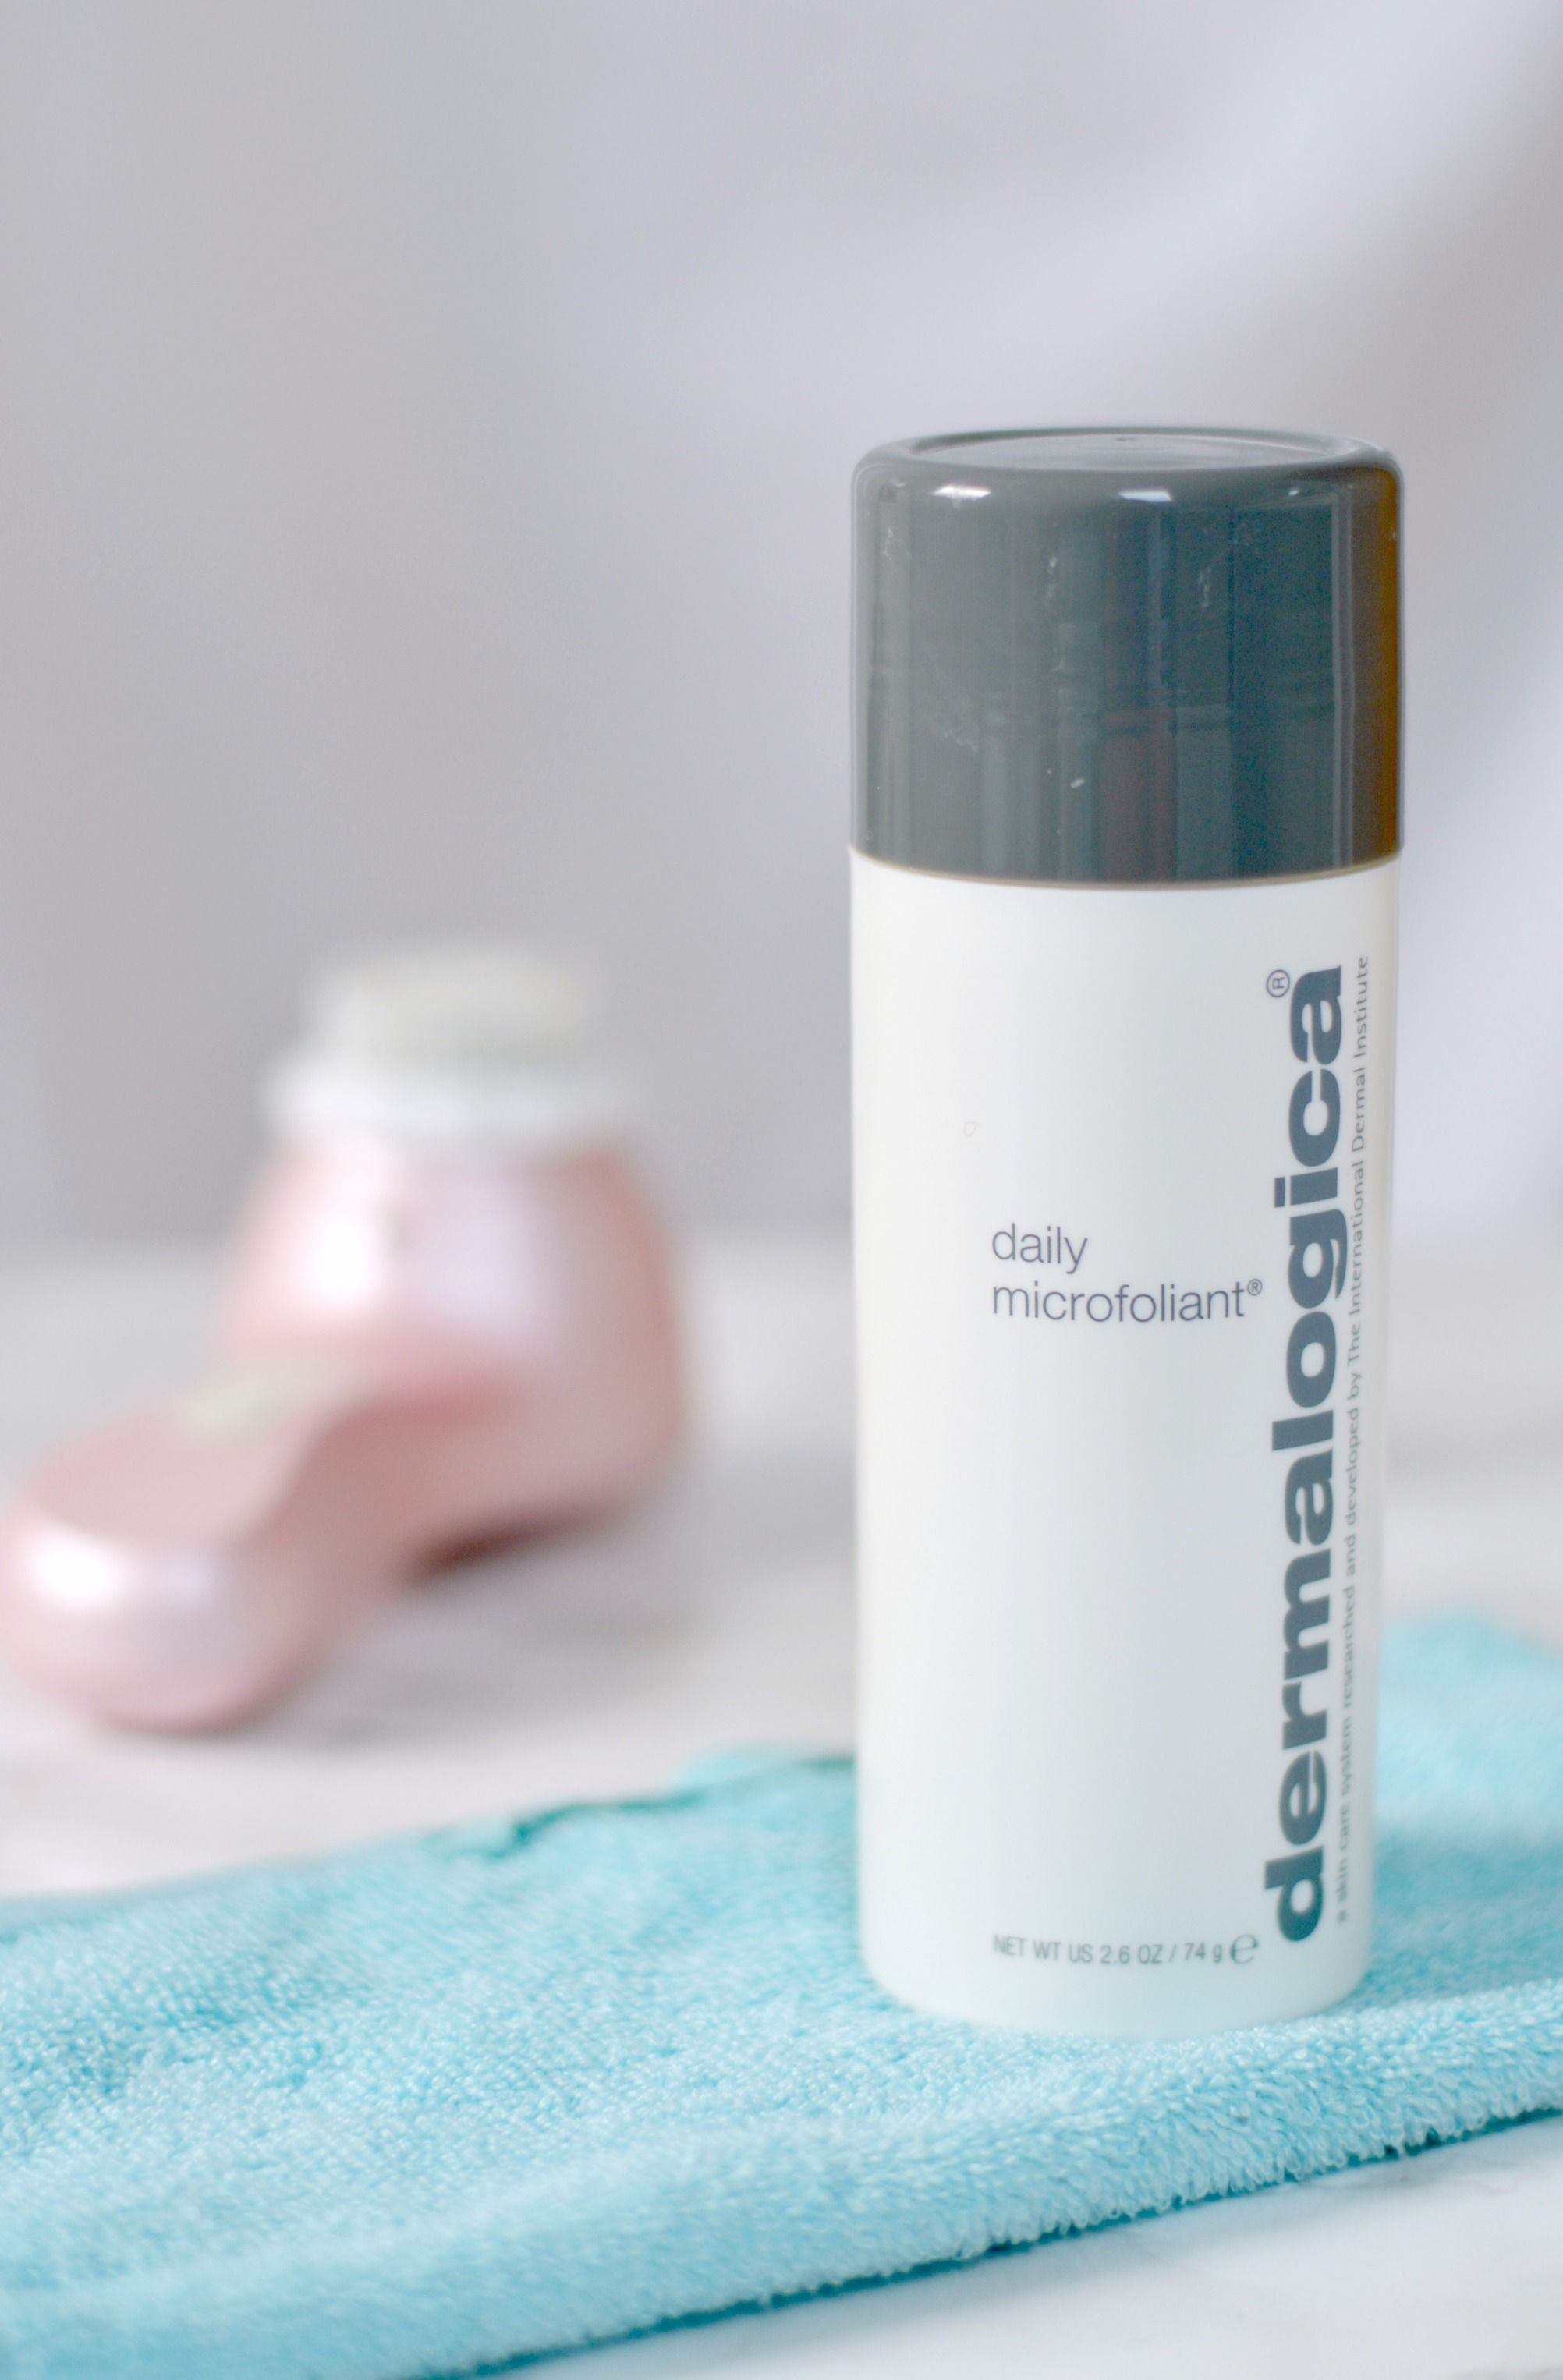 Reviewing my first ever Dermalogica skincare product on the blog today!  Check out the post below to find out more!    http://www.liliesbeauty.com/2017/07/dermalogica-daily-microfoliant.html